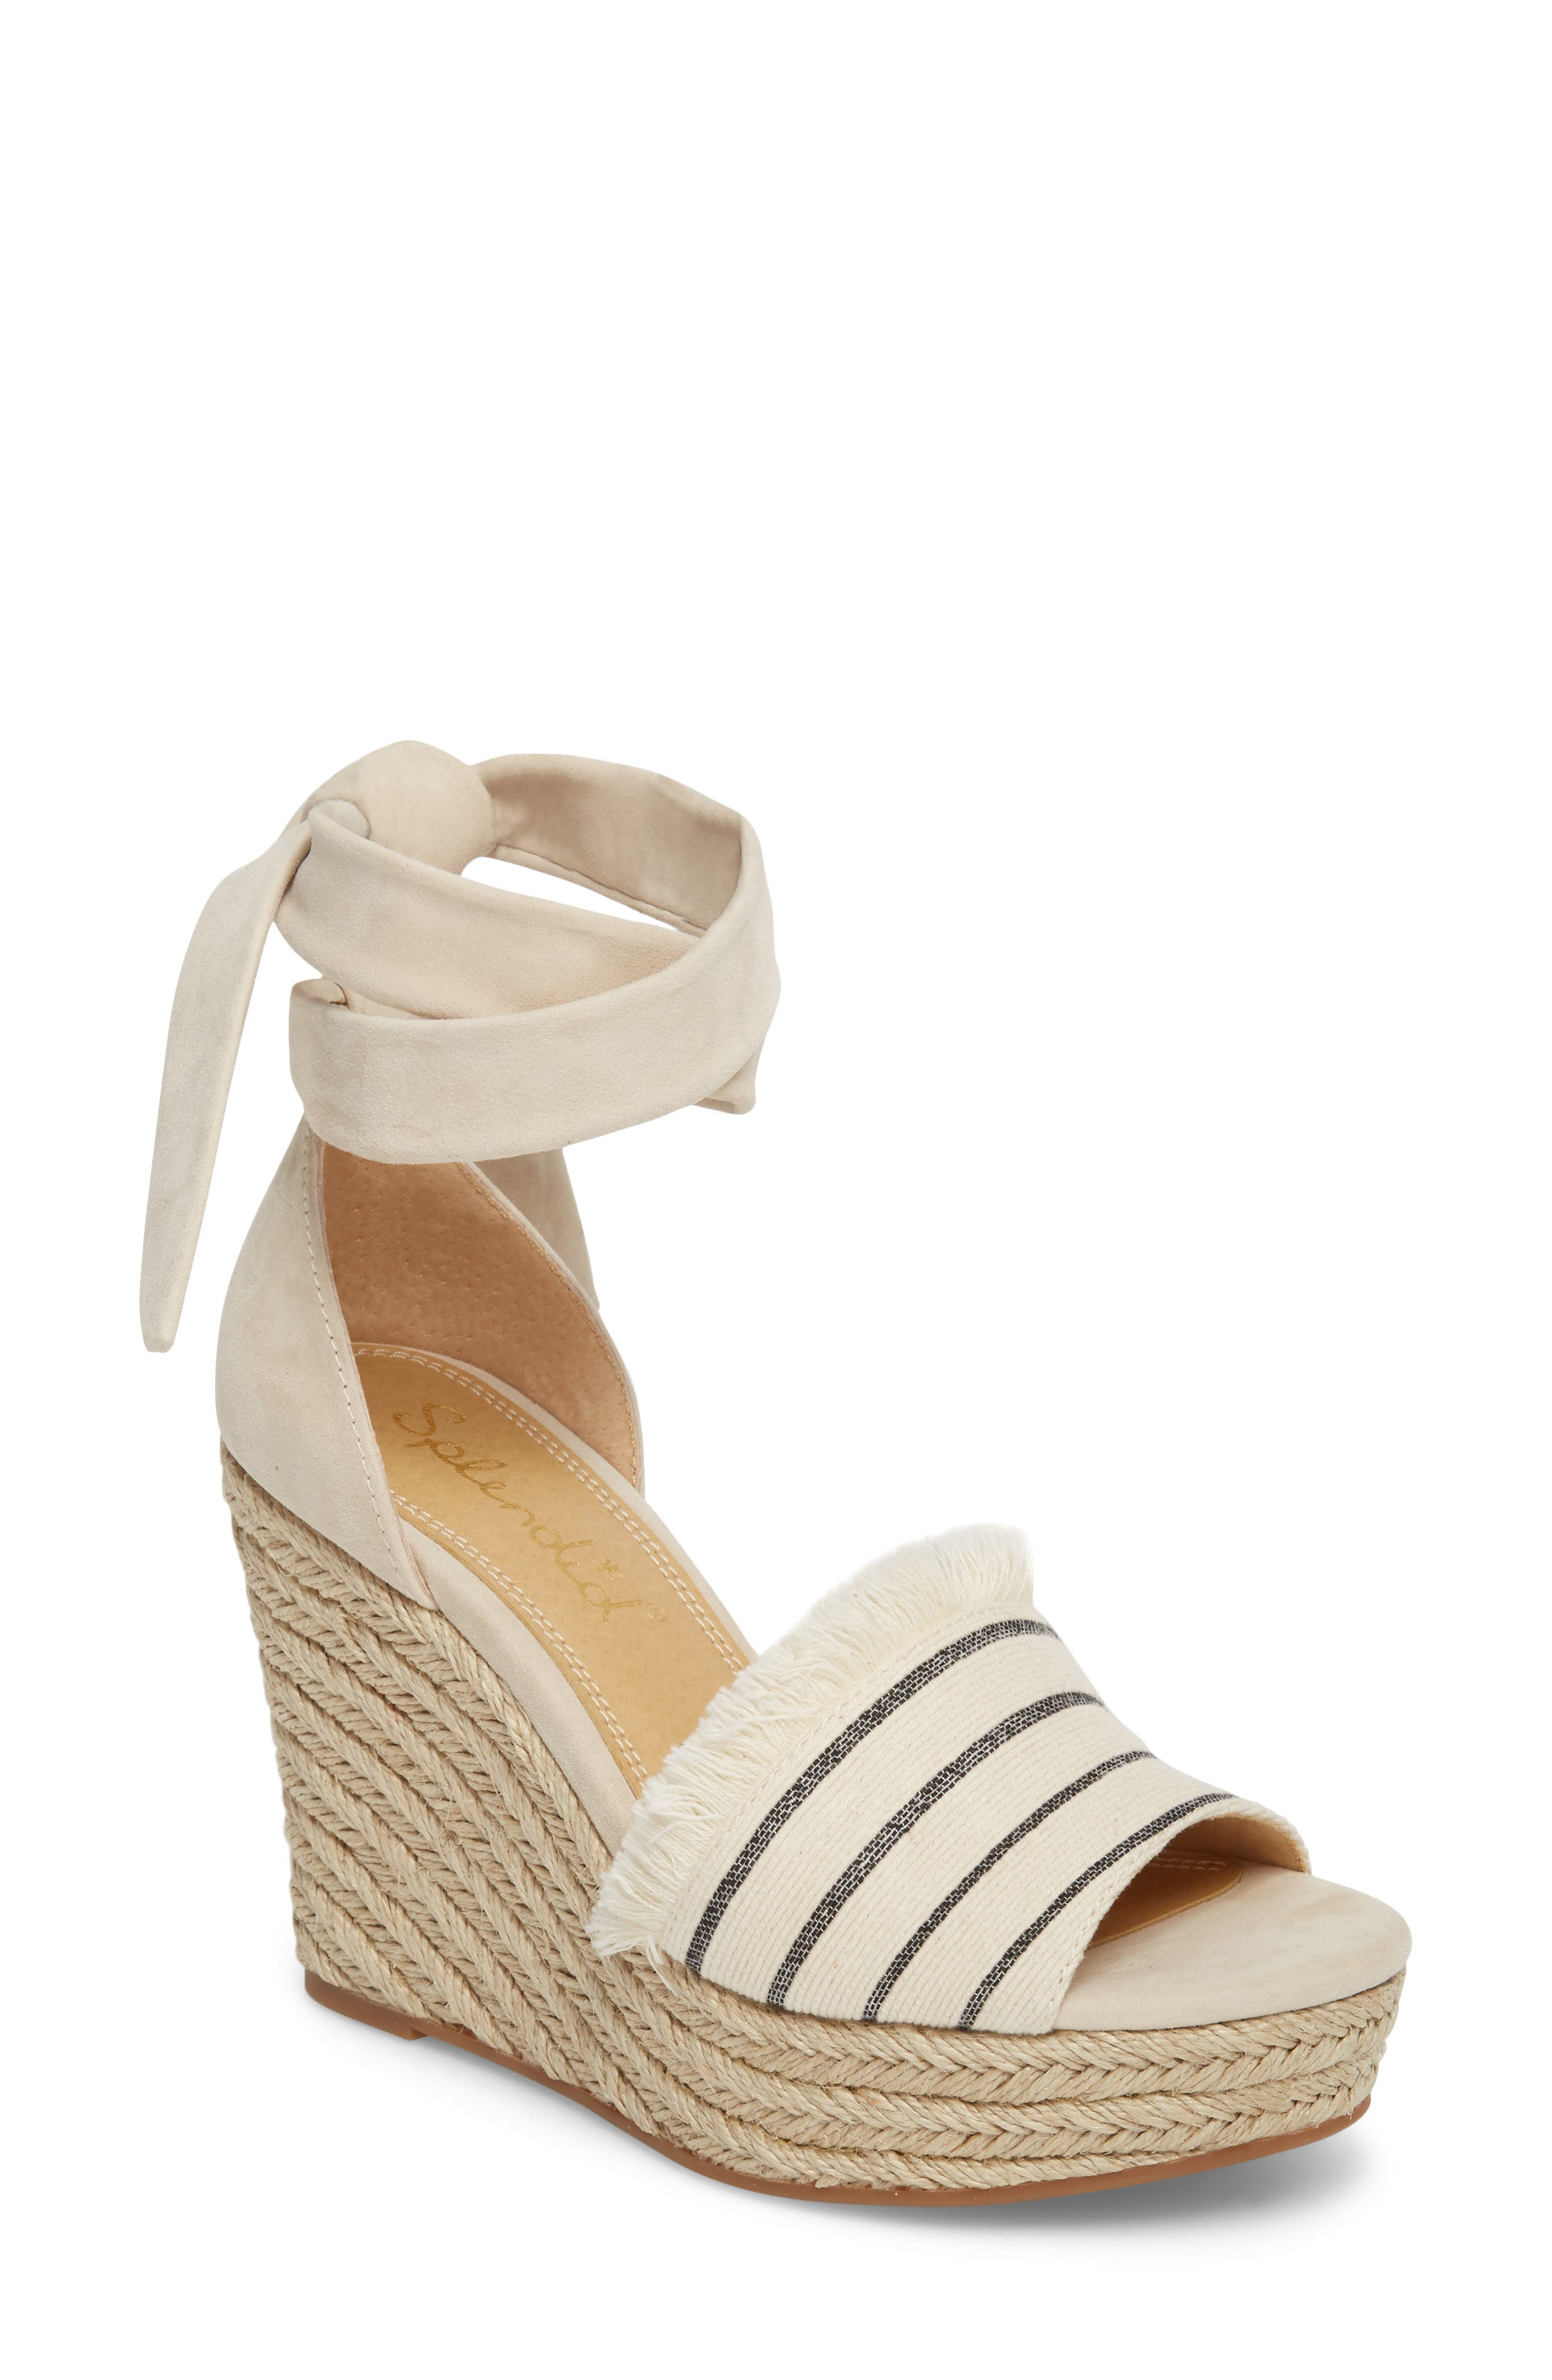 Barke Fringed Platform Wedge Sandal,                             Main thumbnail 1, color,                             100